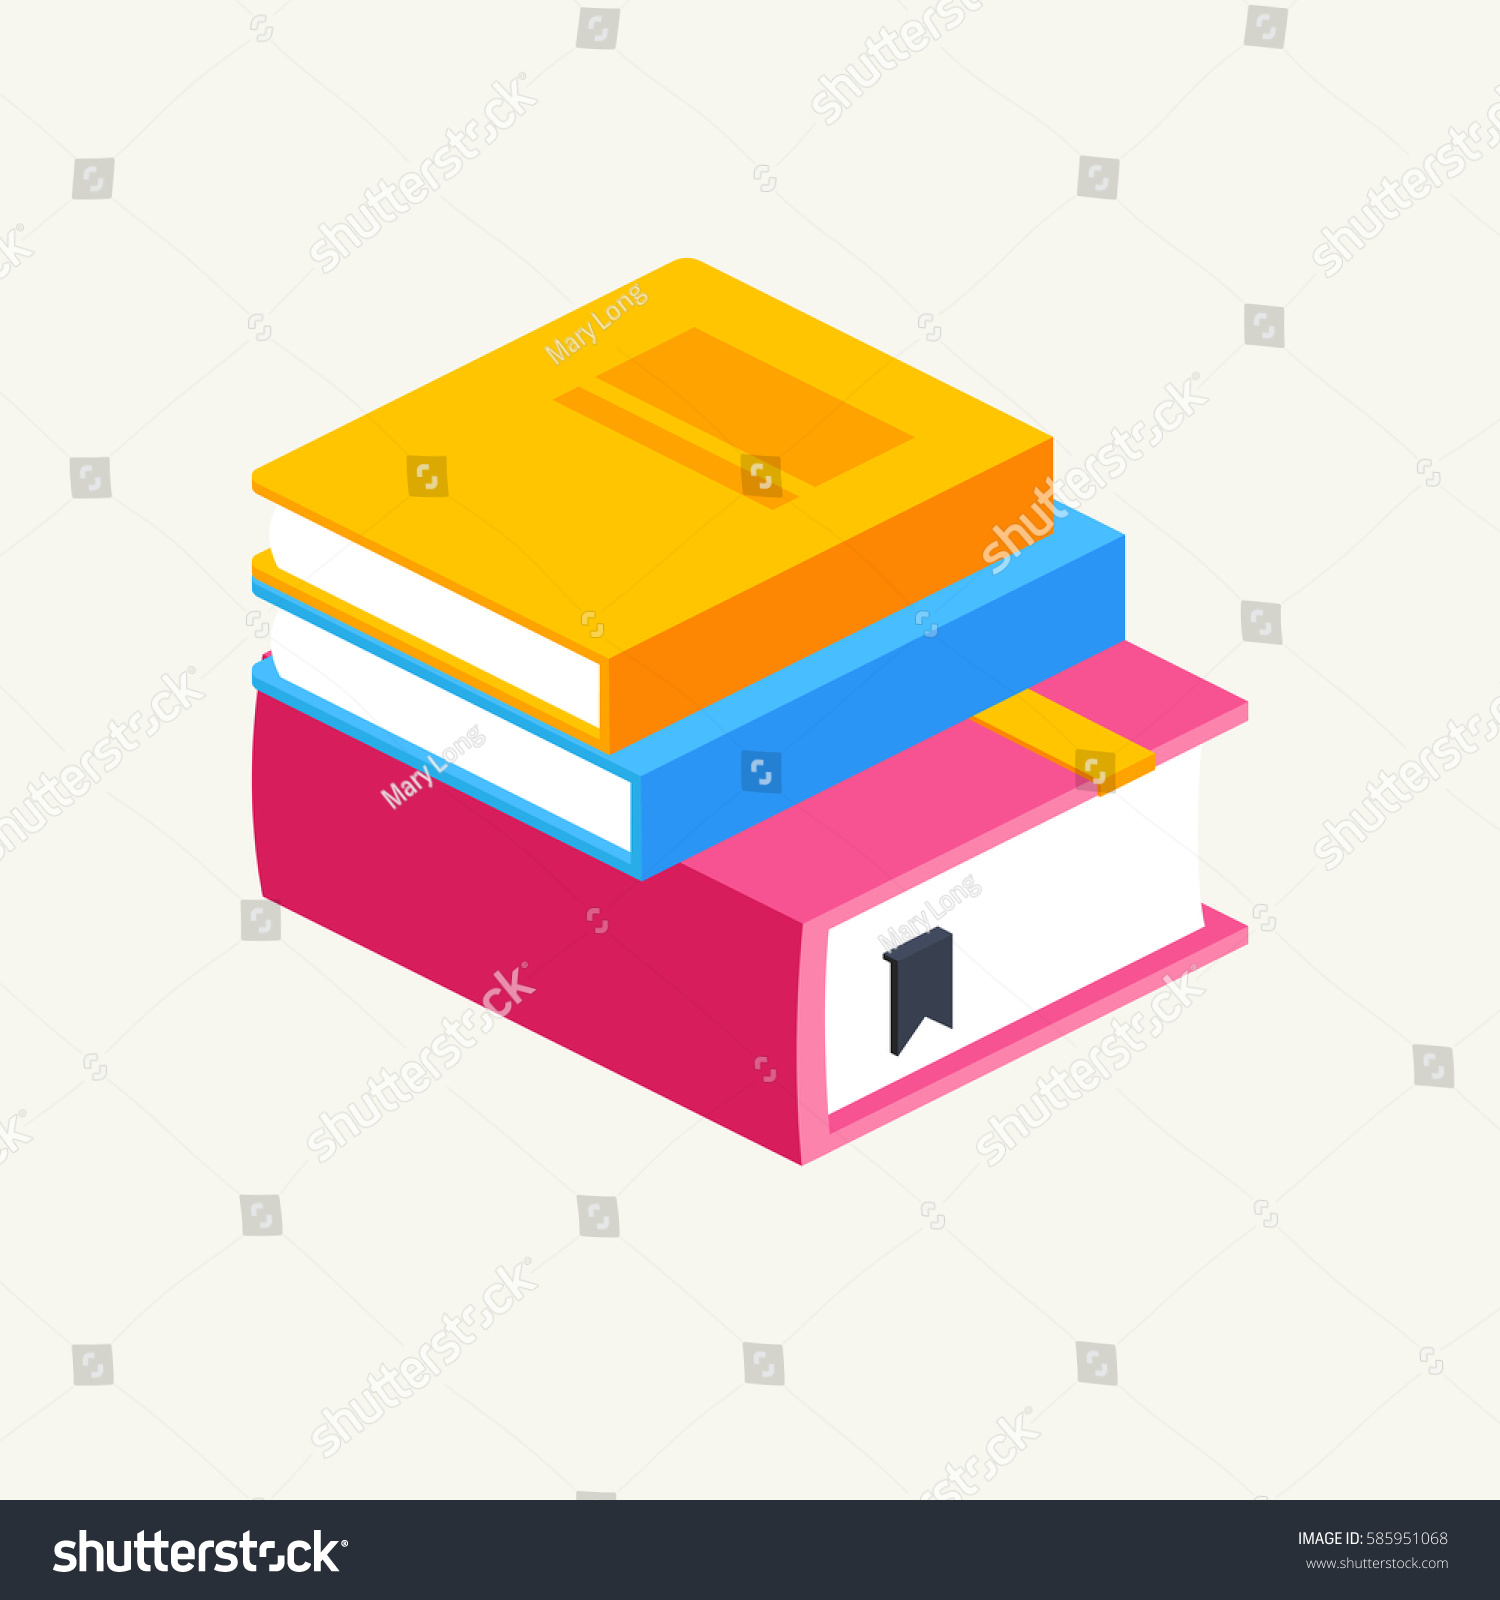 Colorful Stack Books Isometric Stock Vector